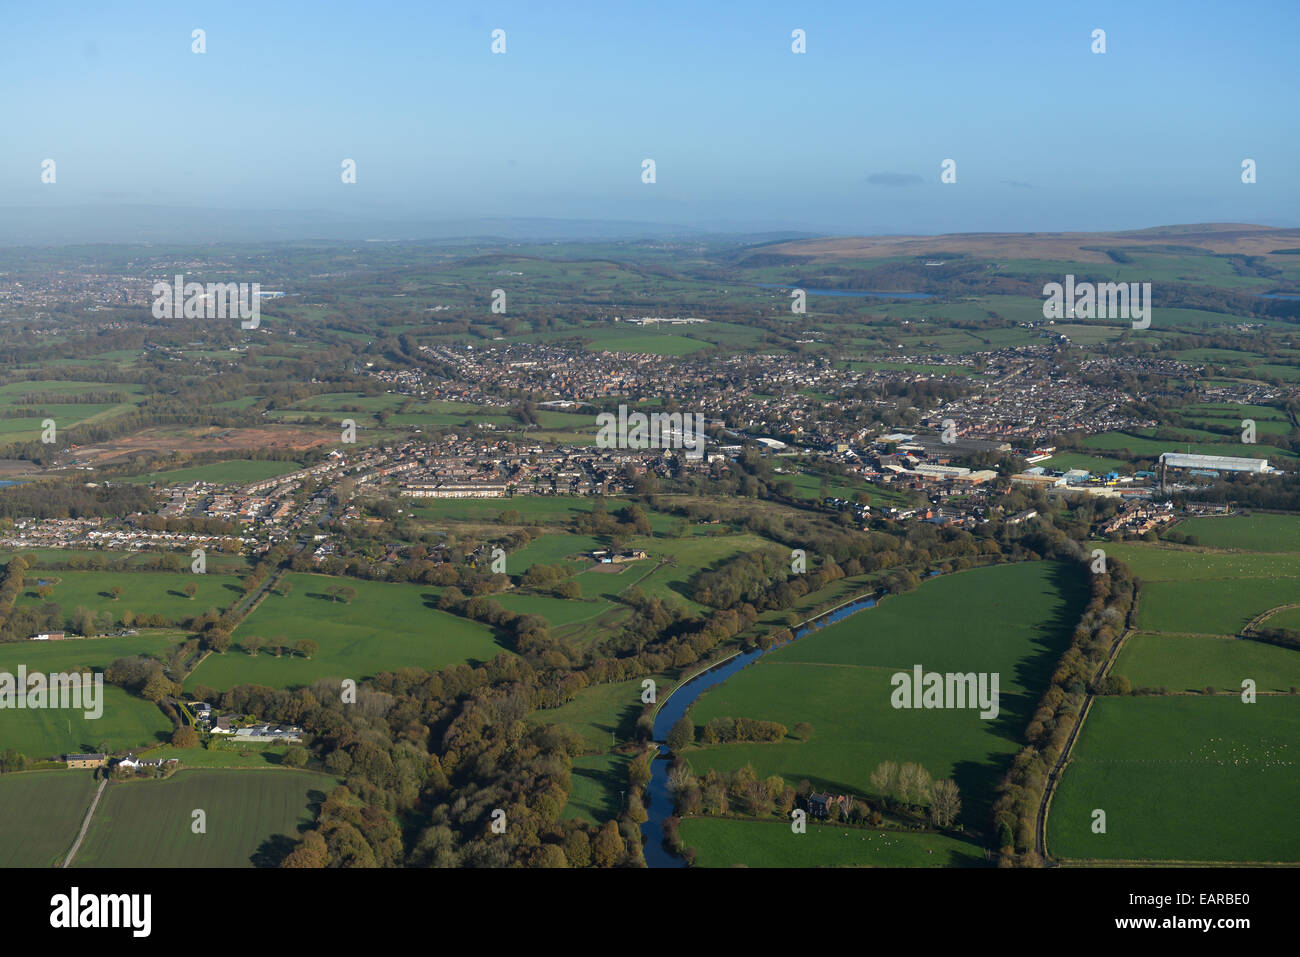 An aerial view of the Lancashire countryside looking toward the West Pennine Moors with the town of Adlington visible - Stock Image